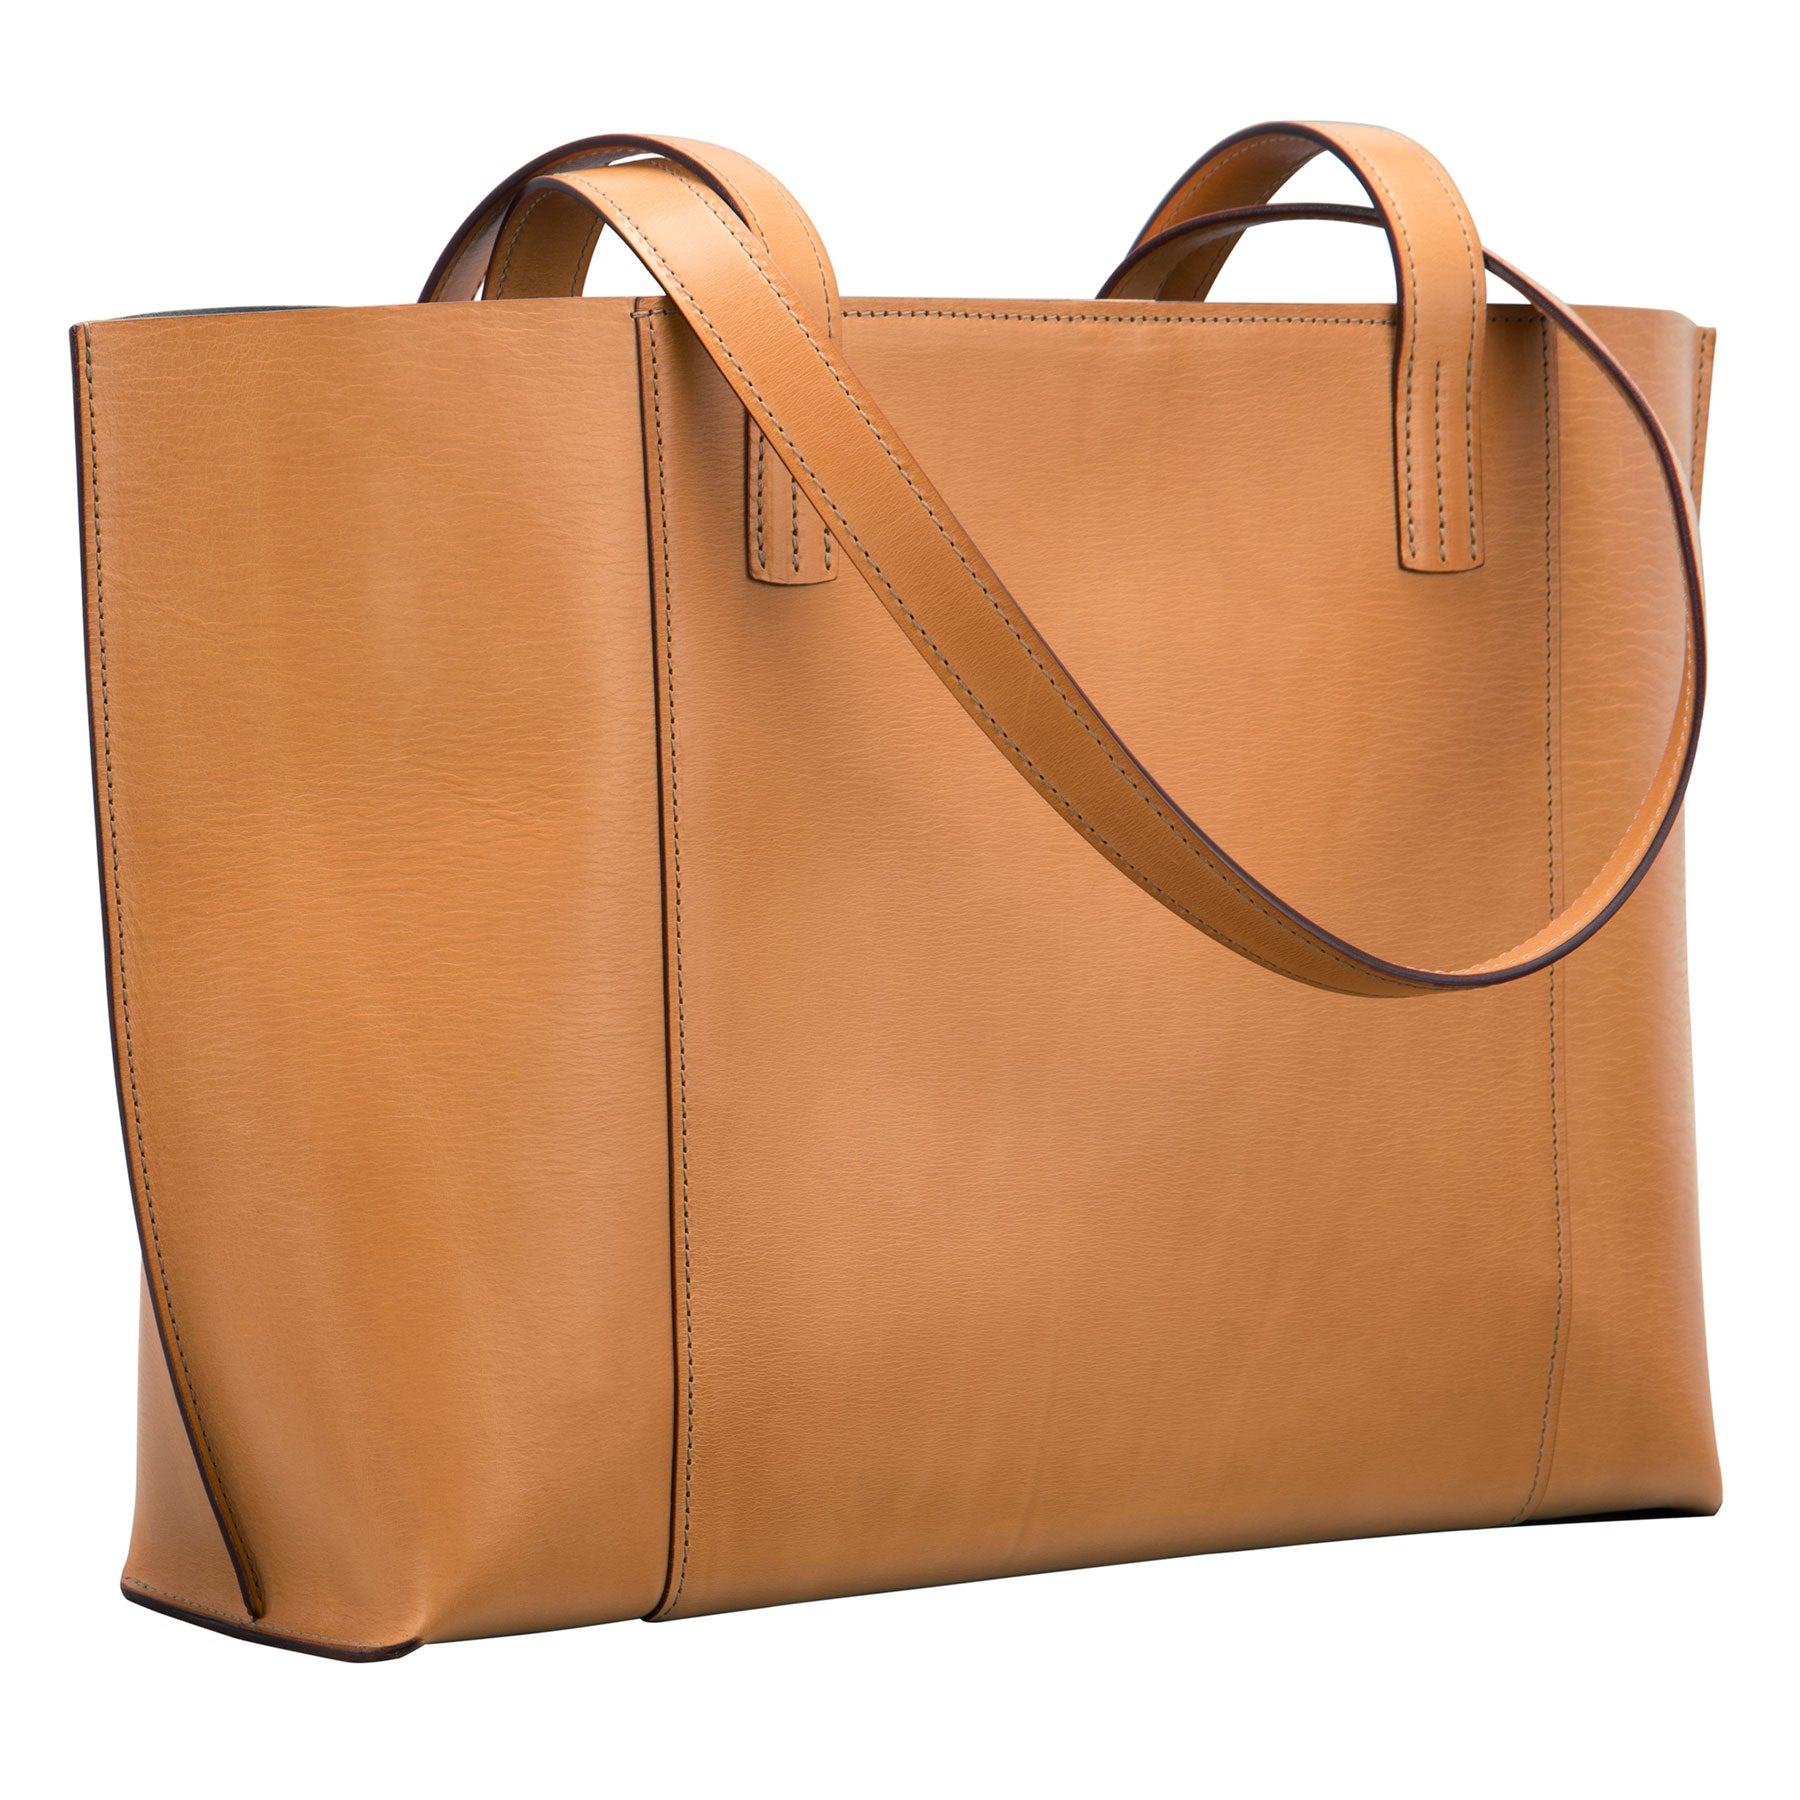 Ellie Tote: Hand-Burnished Leather